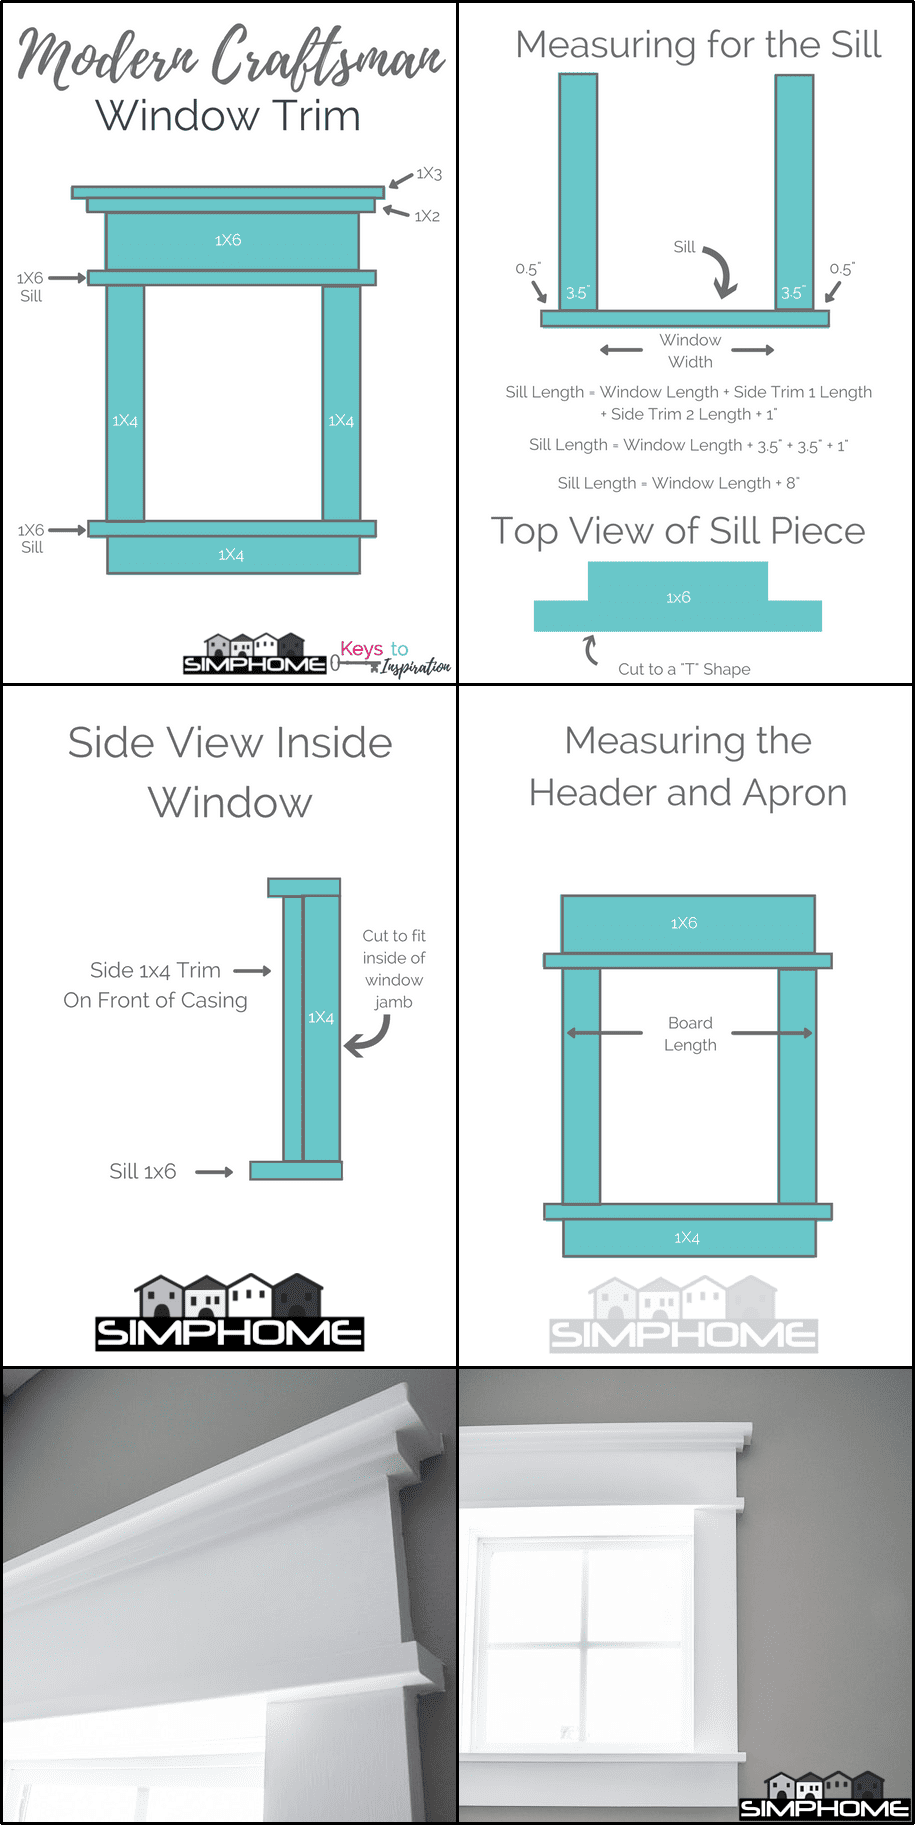 4.DIY Modern Window Trim via Simphome.com